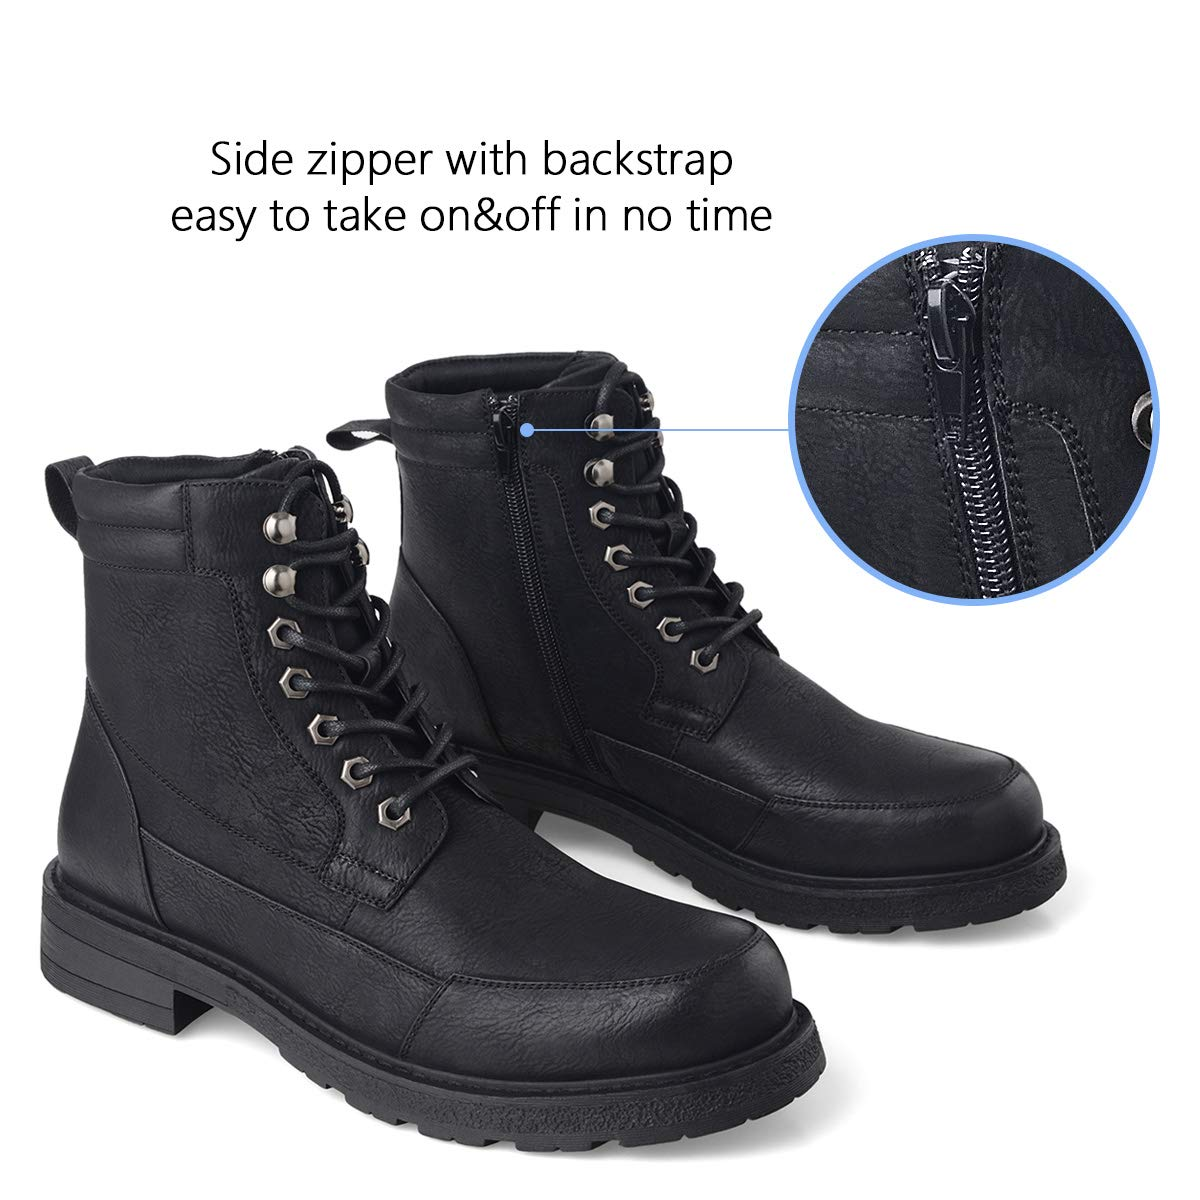 GM GOLAIMAN Mens Combat Boots Winter Work-Lace Up Zip Apron Toe Ankle High Boot for Hiking Motorcycle Riding Military Tactical